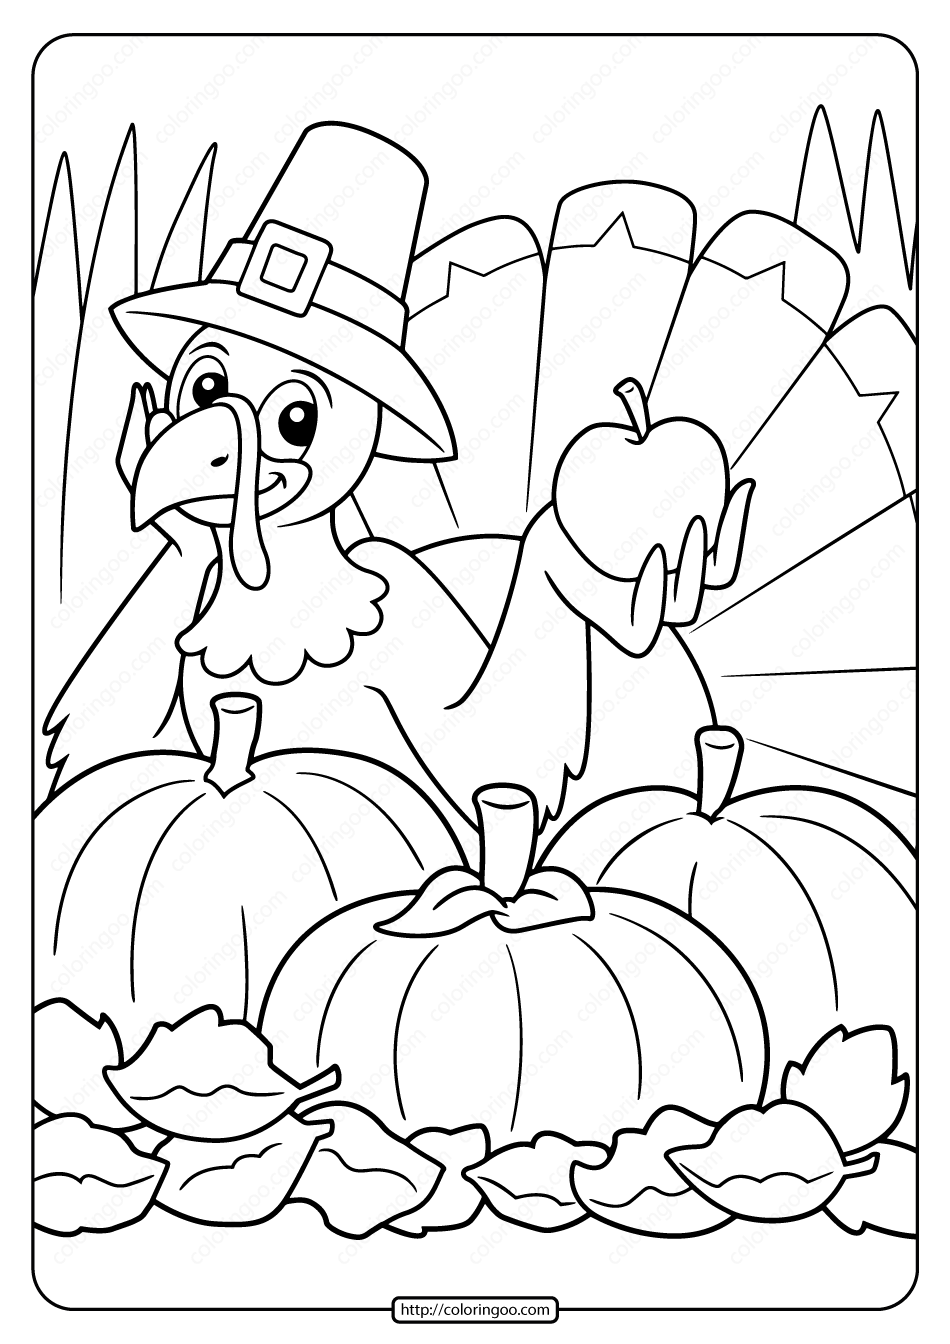 Thanksgiving Coloring Pages For Preschool Best Coloring Pages For Kids Thanksgiving Coloring Book Fall Coloring Pages Turkey Coloring Pages